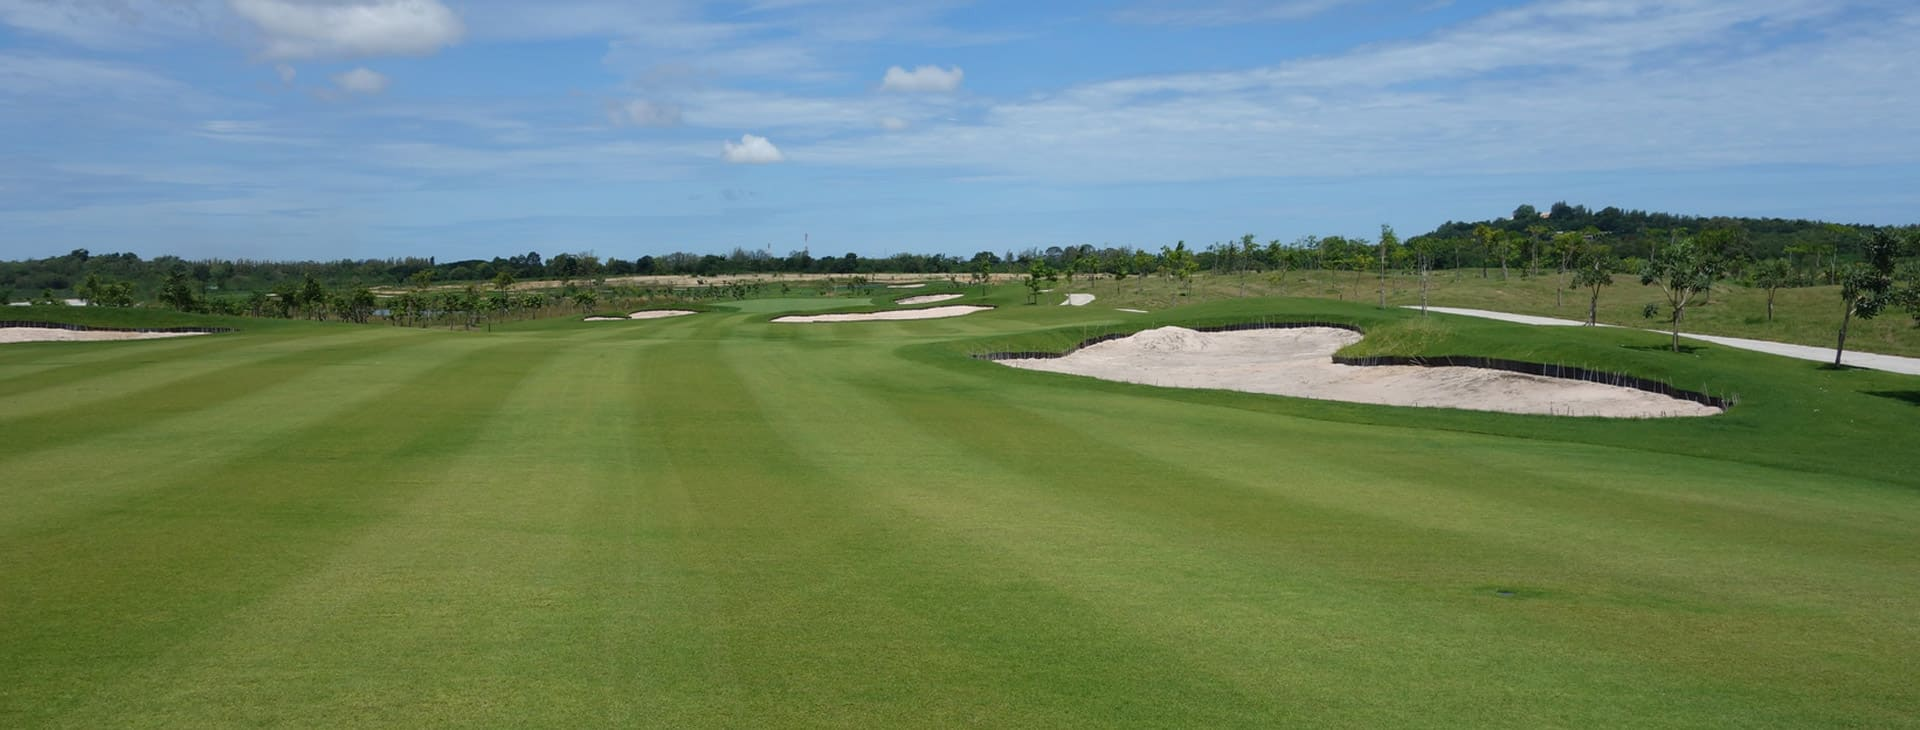 Golf Thailand_Golf Courses_Pattaya_Siam Country Club Waterside Course